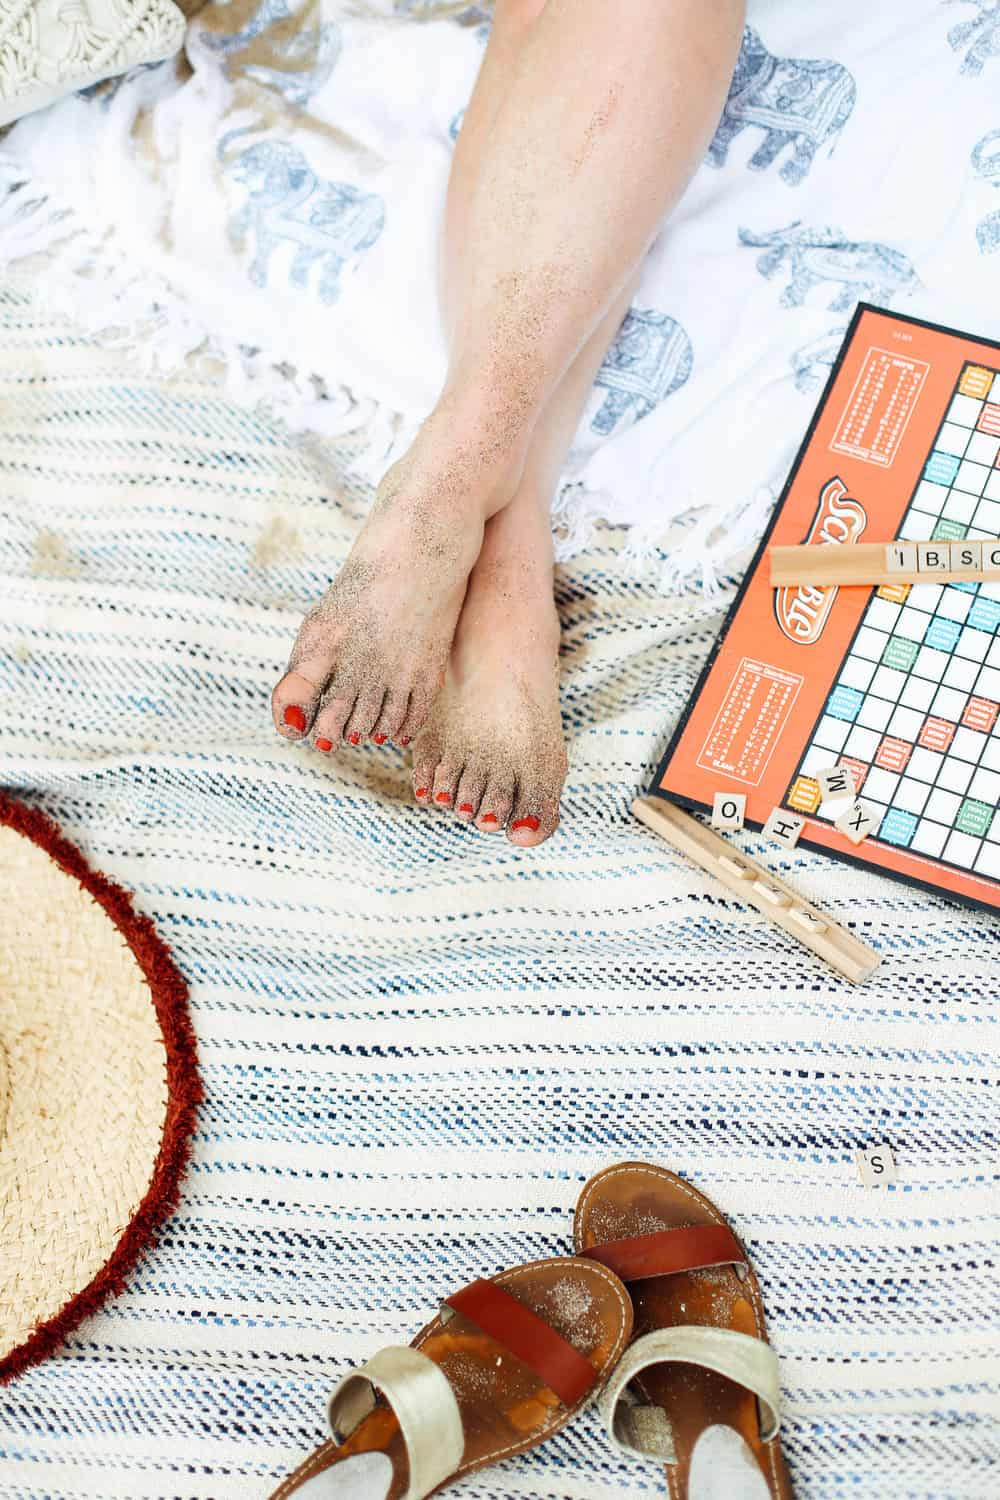 Sandy bare feet with Scrabble game board on beach towels